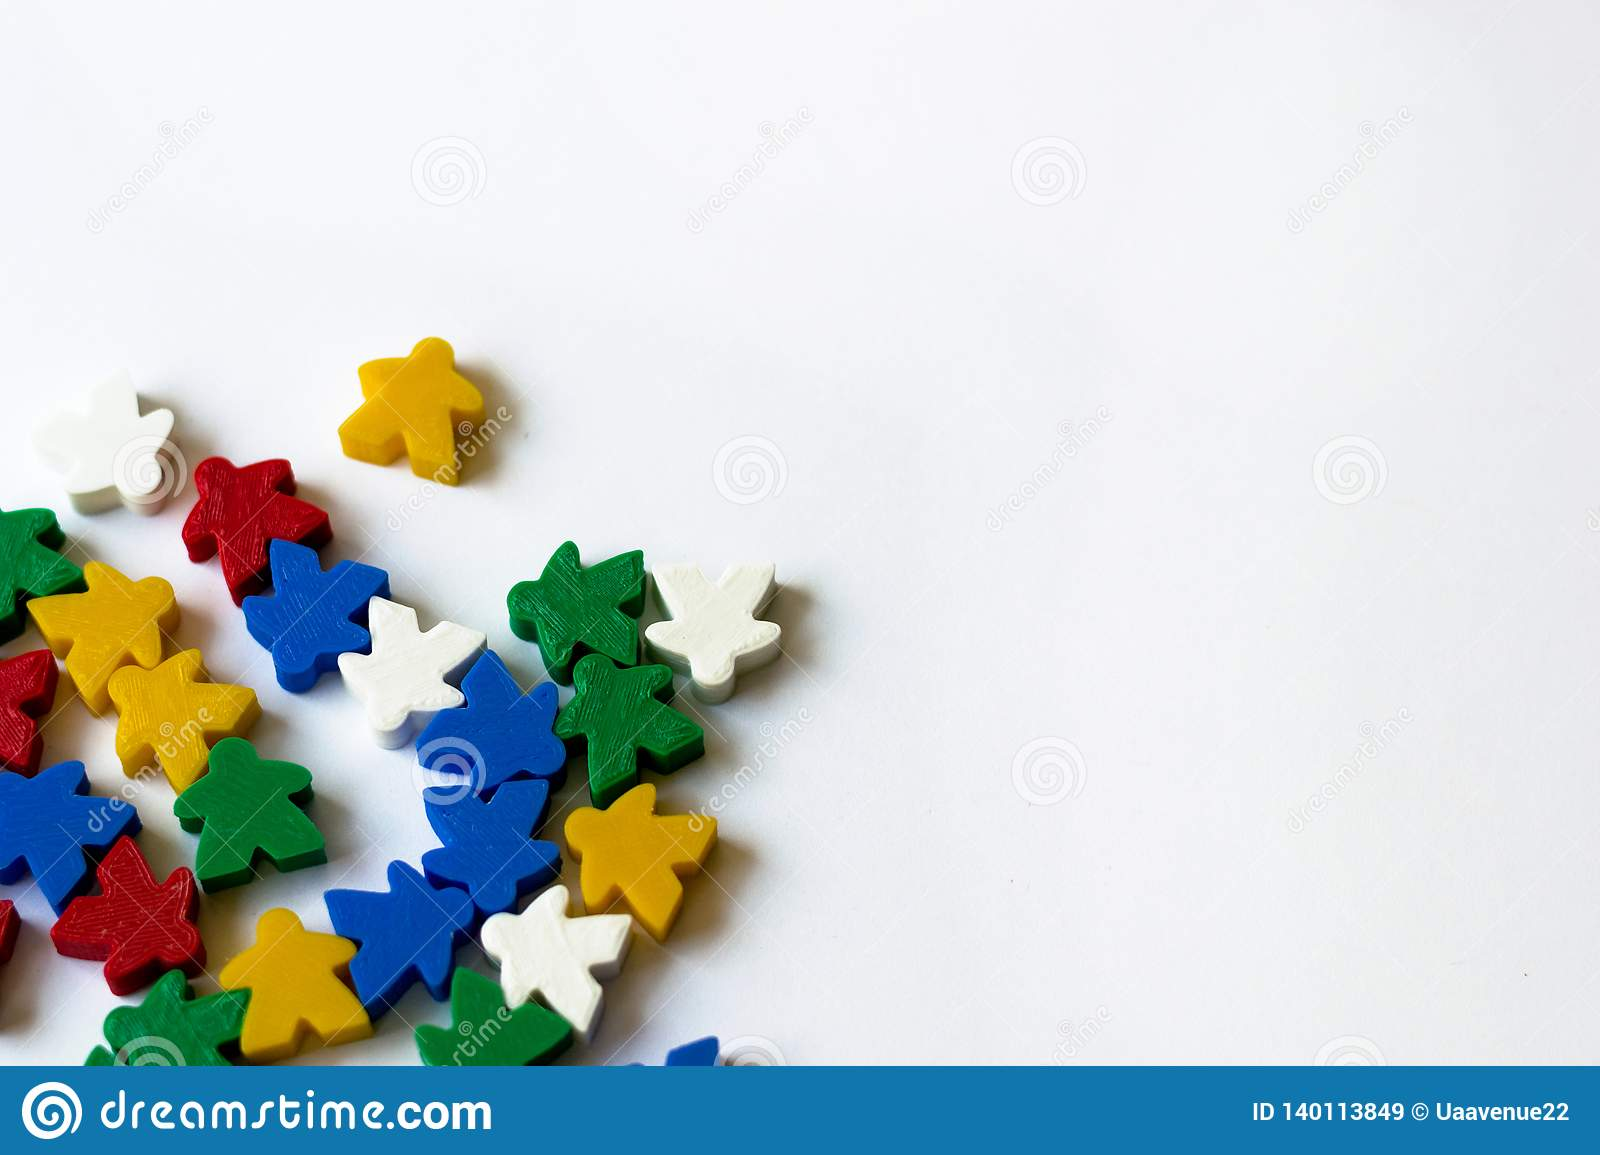 Colorful meeples as components of board game on white background with copyspace. Concept of party game playing, leisure, fun,